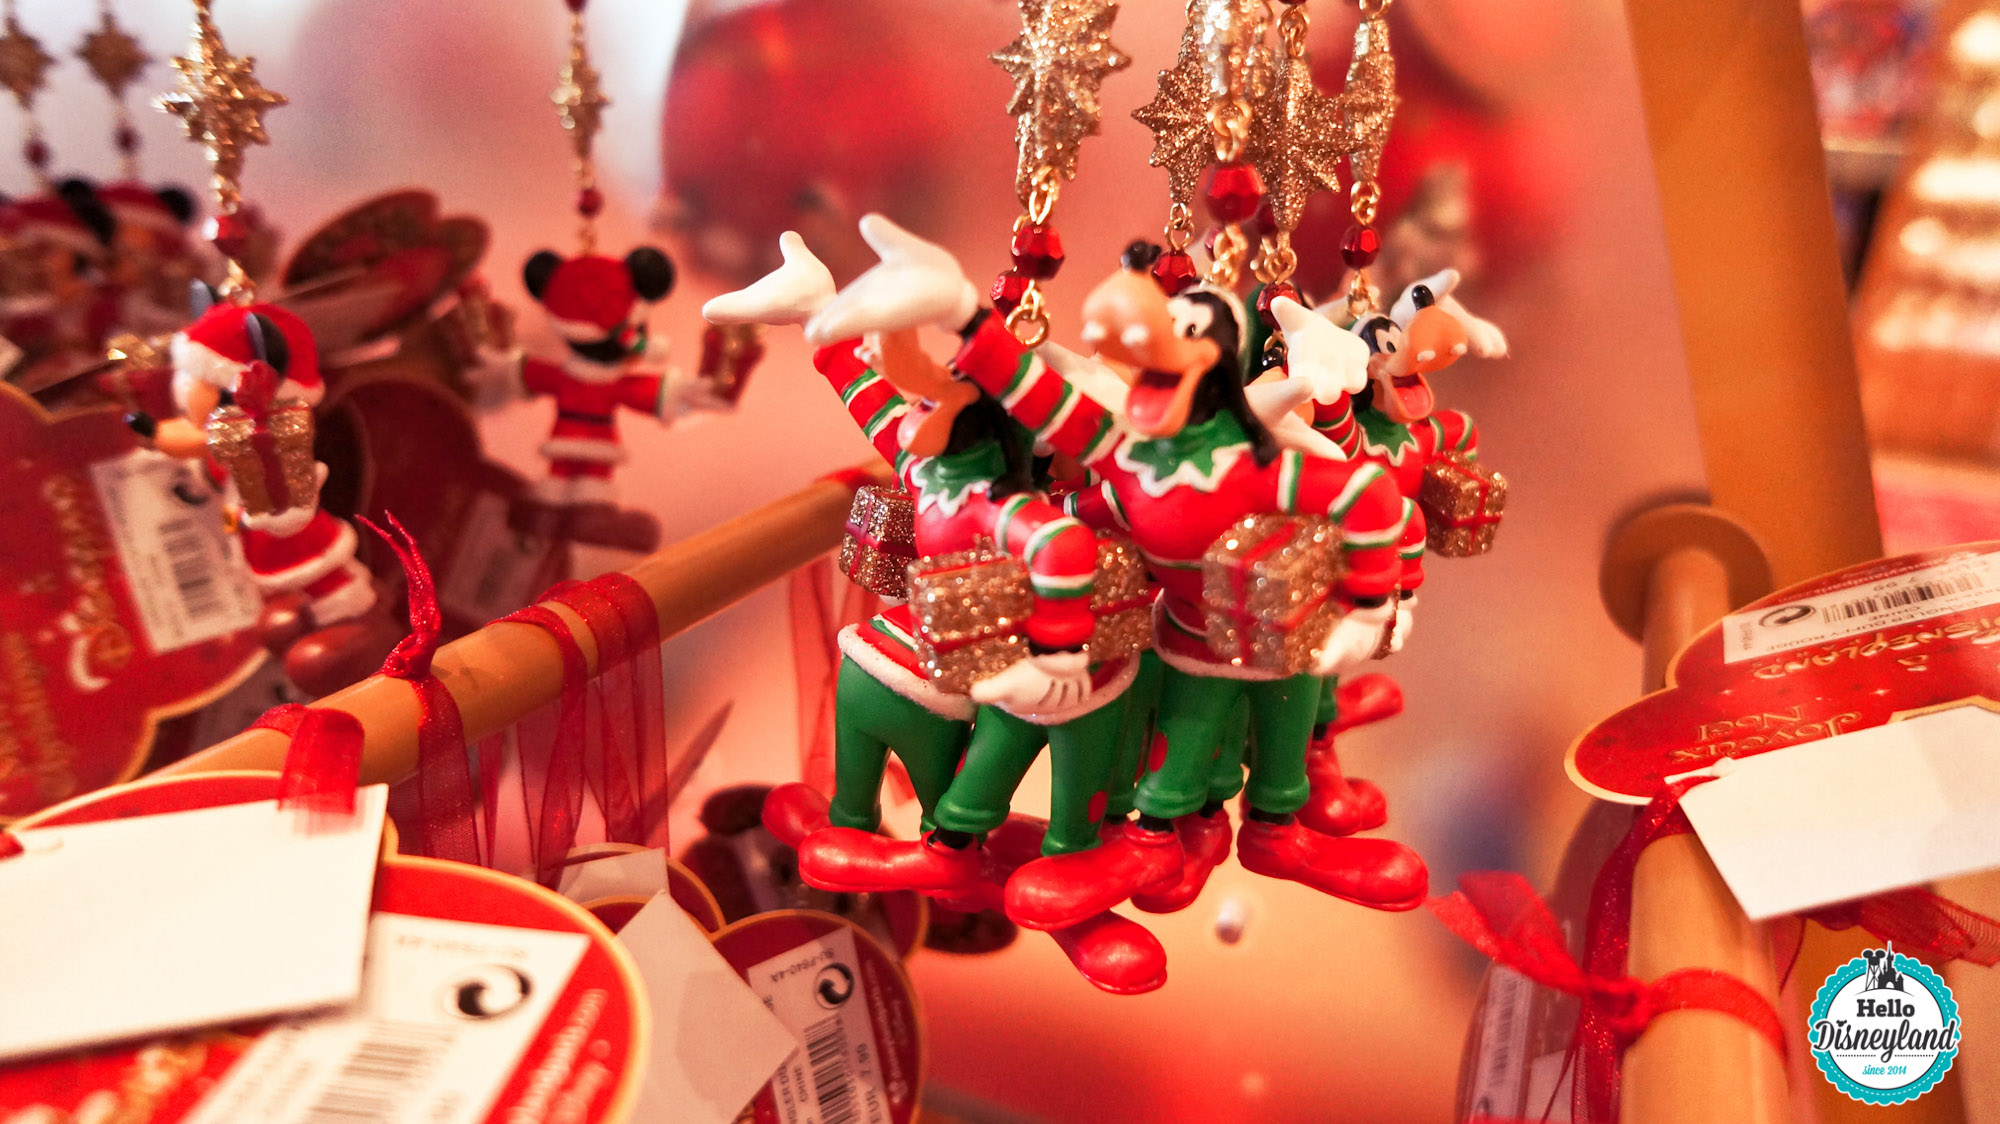 #BC5B0F Decoration De Noel Disneyland Paris 5513 décorations de noel sims 3 saisons 2000x1124 px @ aertt.com